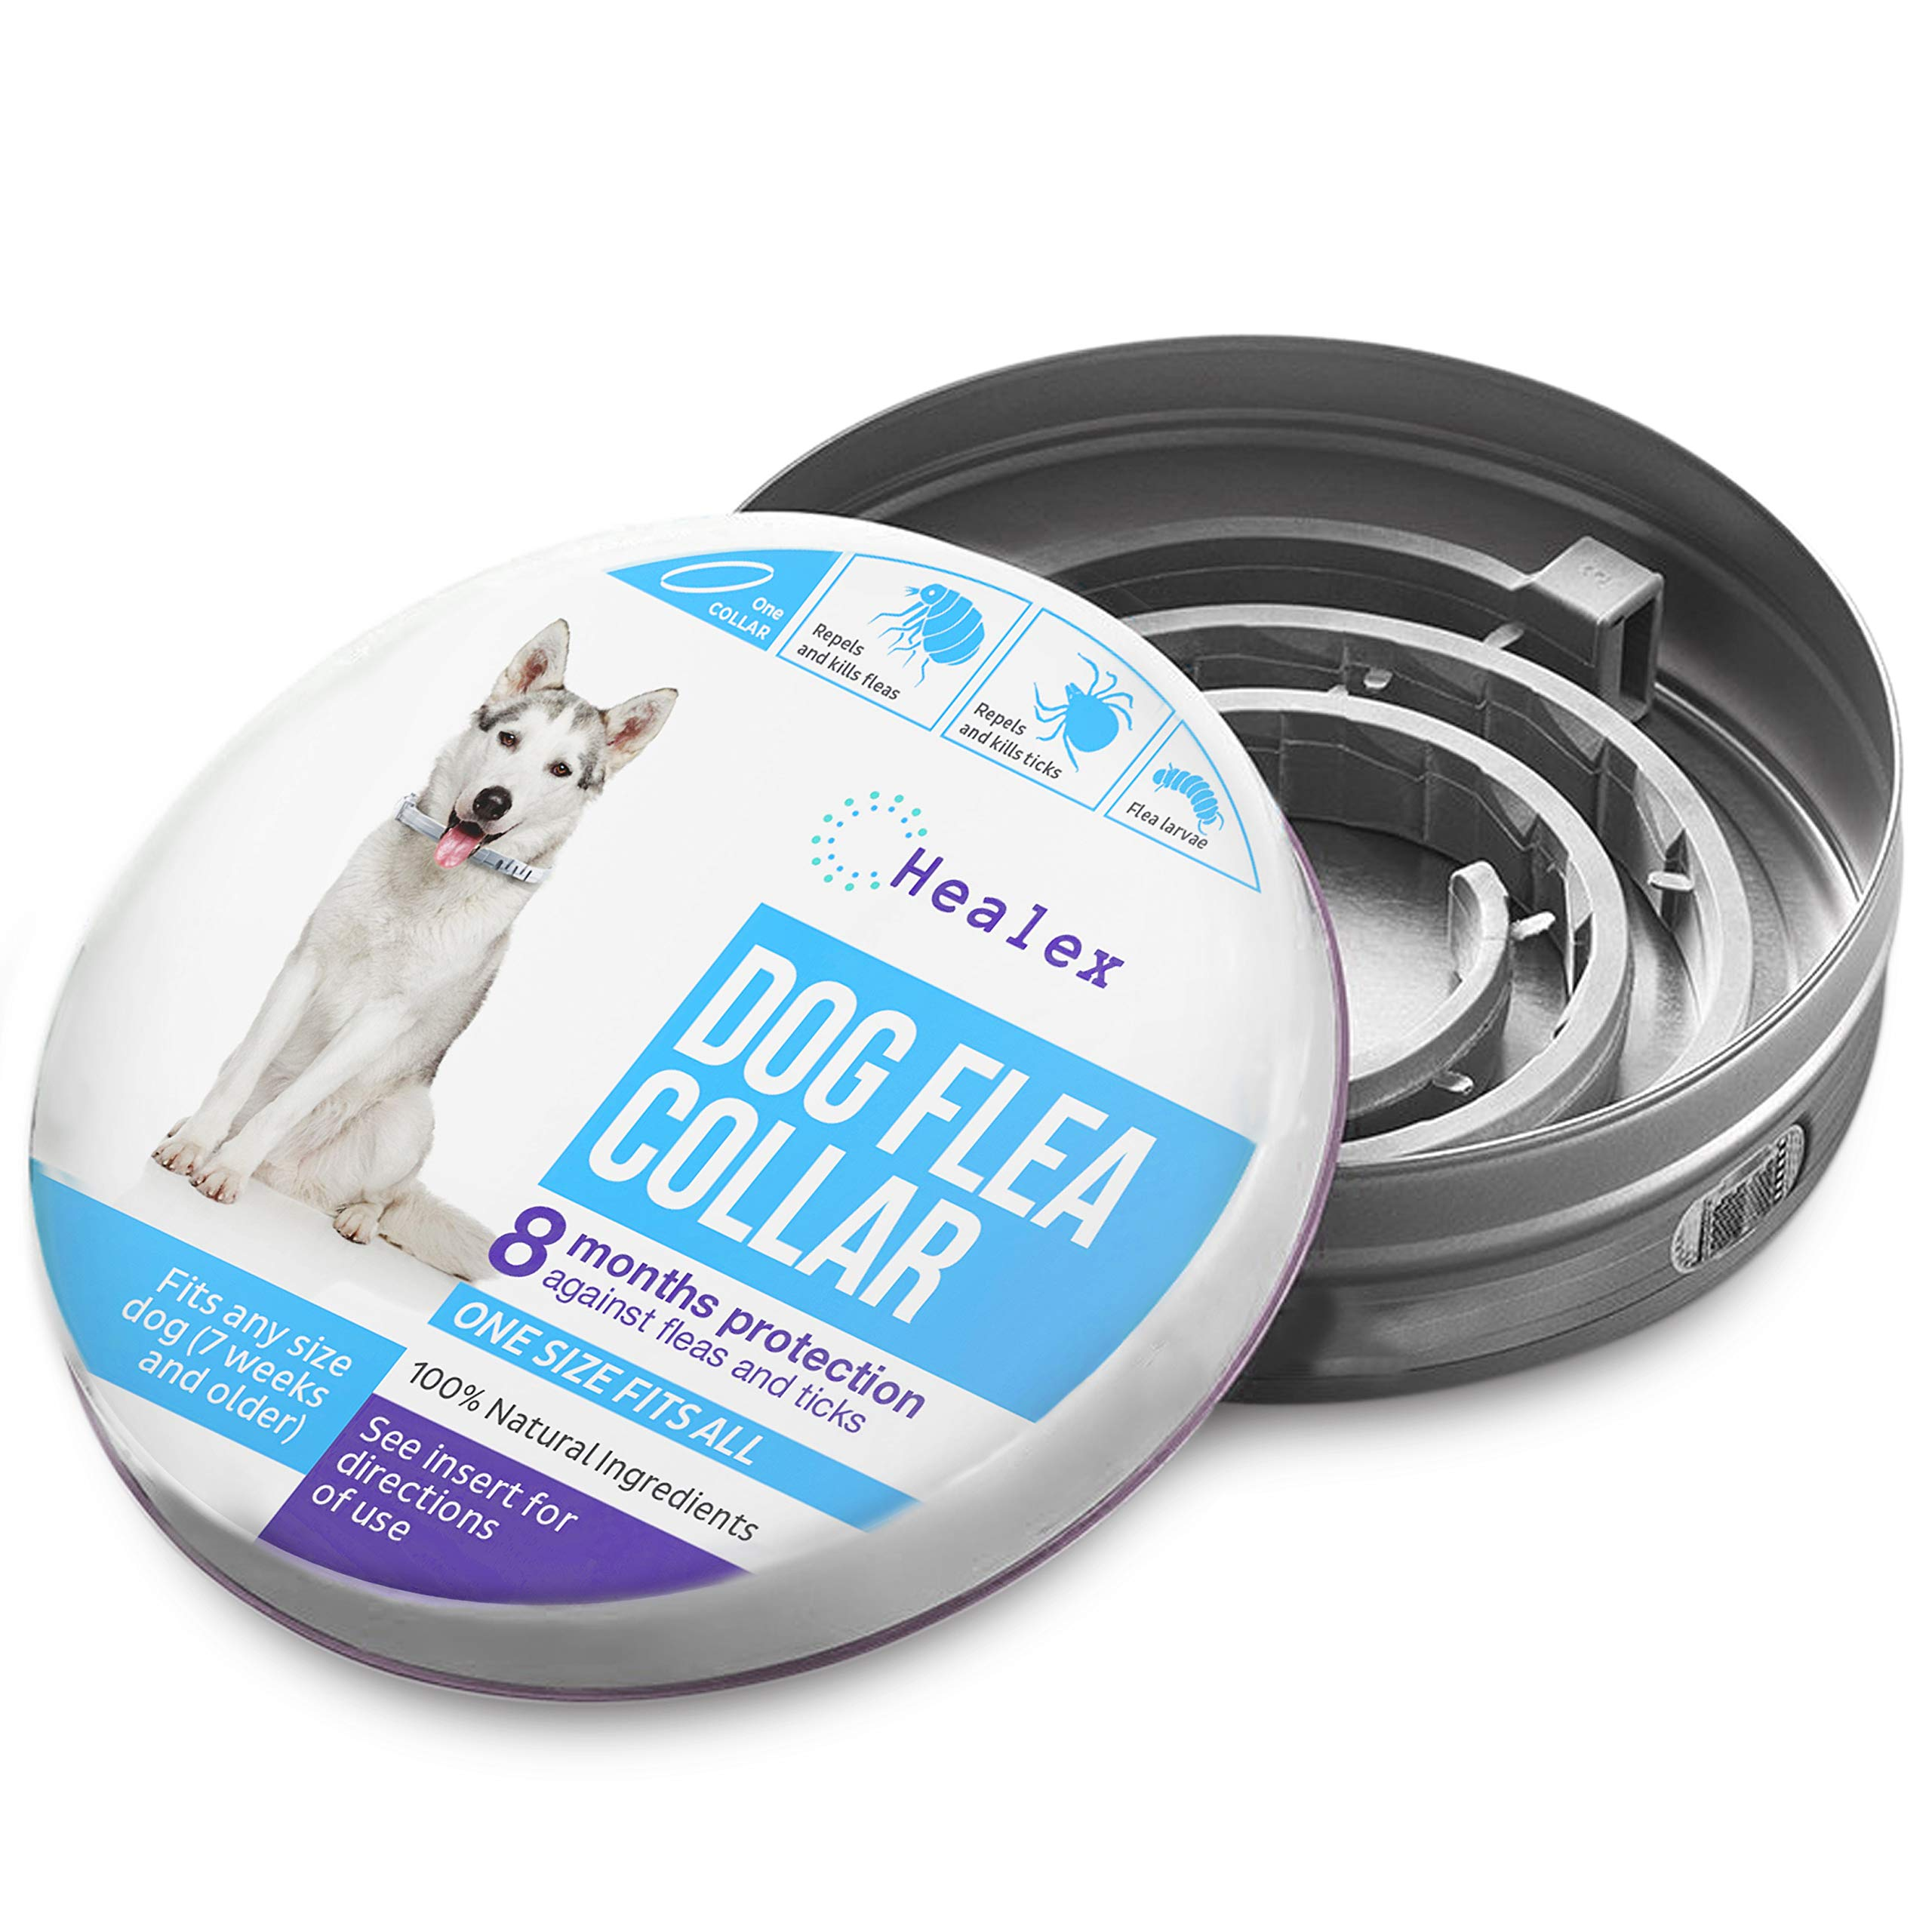 Healex Dog Flea Collar for Flea and Tick Treatment and Prevention | One Size Fits All, Collars Work for Dogs and Puppies, 100% Natural Ingredients | Helpful E-Book Included by Healex